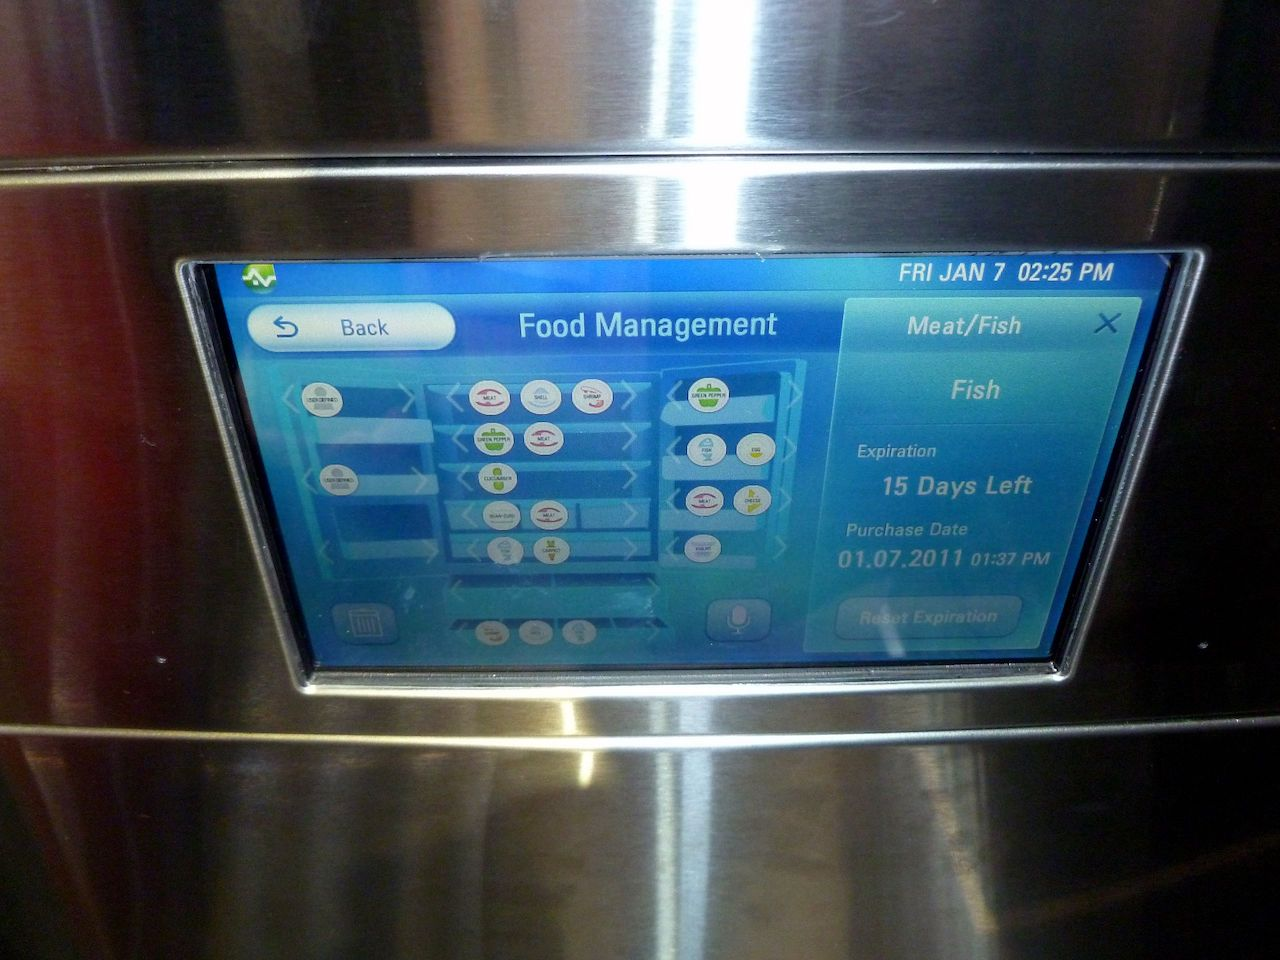 The front screen of an LG IoT smart refrigerator